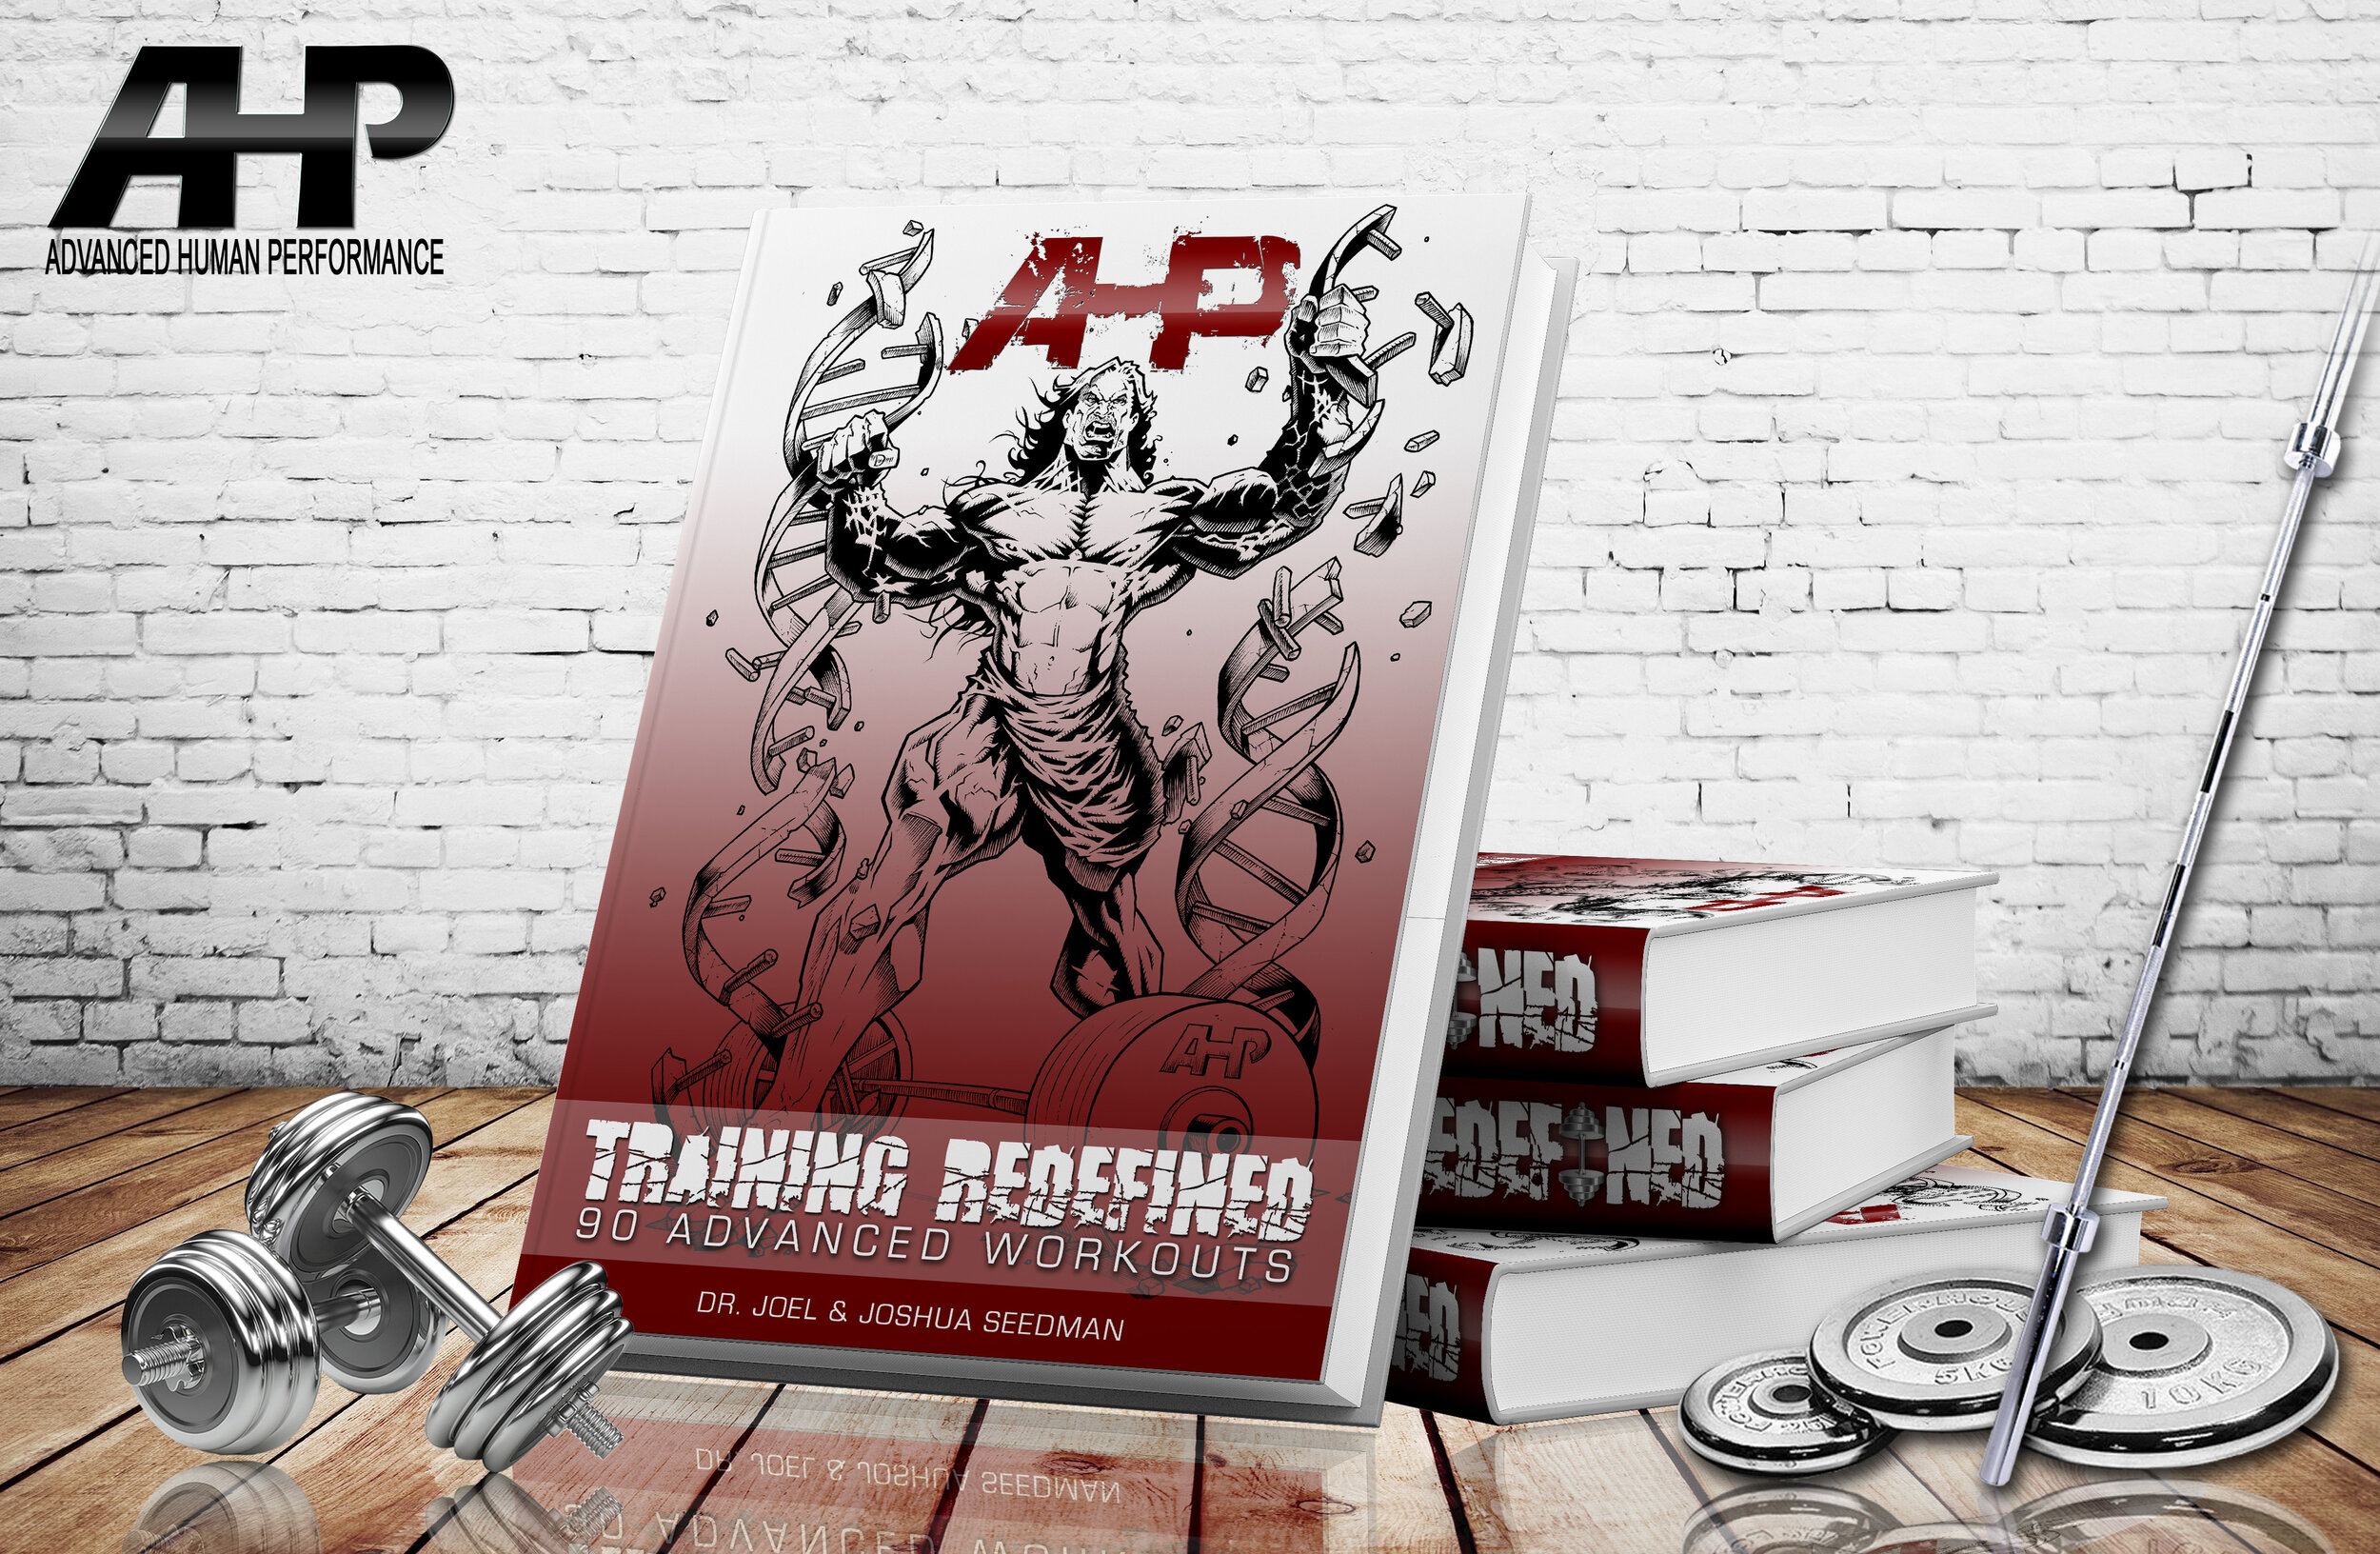 Training Redefined 90 Advanced Eccentric Isometric Workouts Thumbnail (AHP).jpg